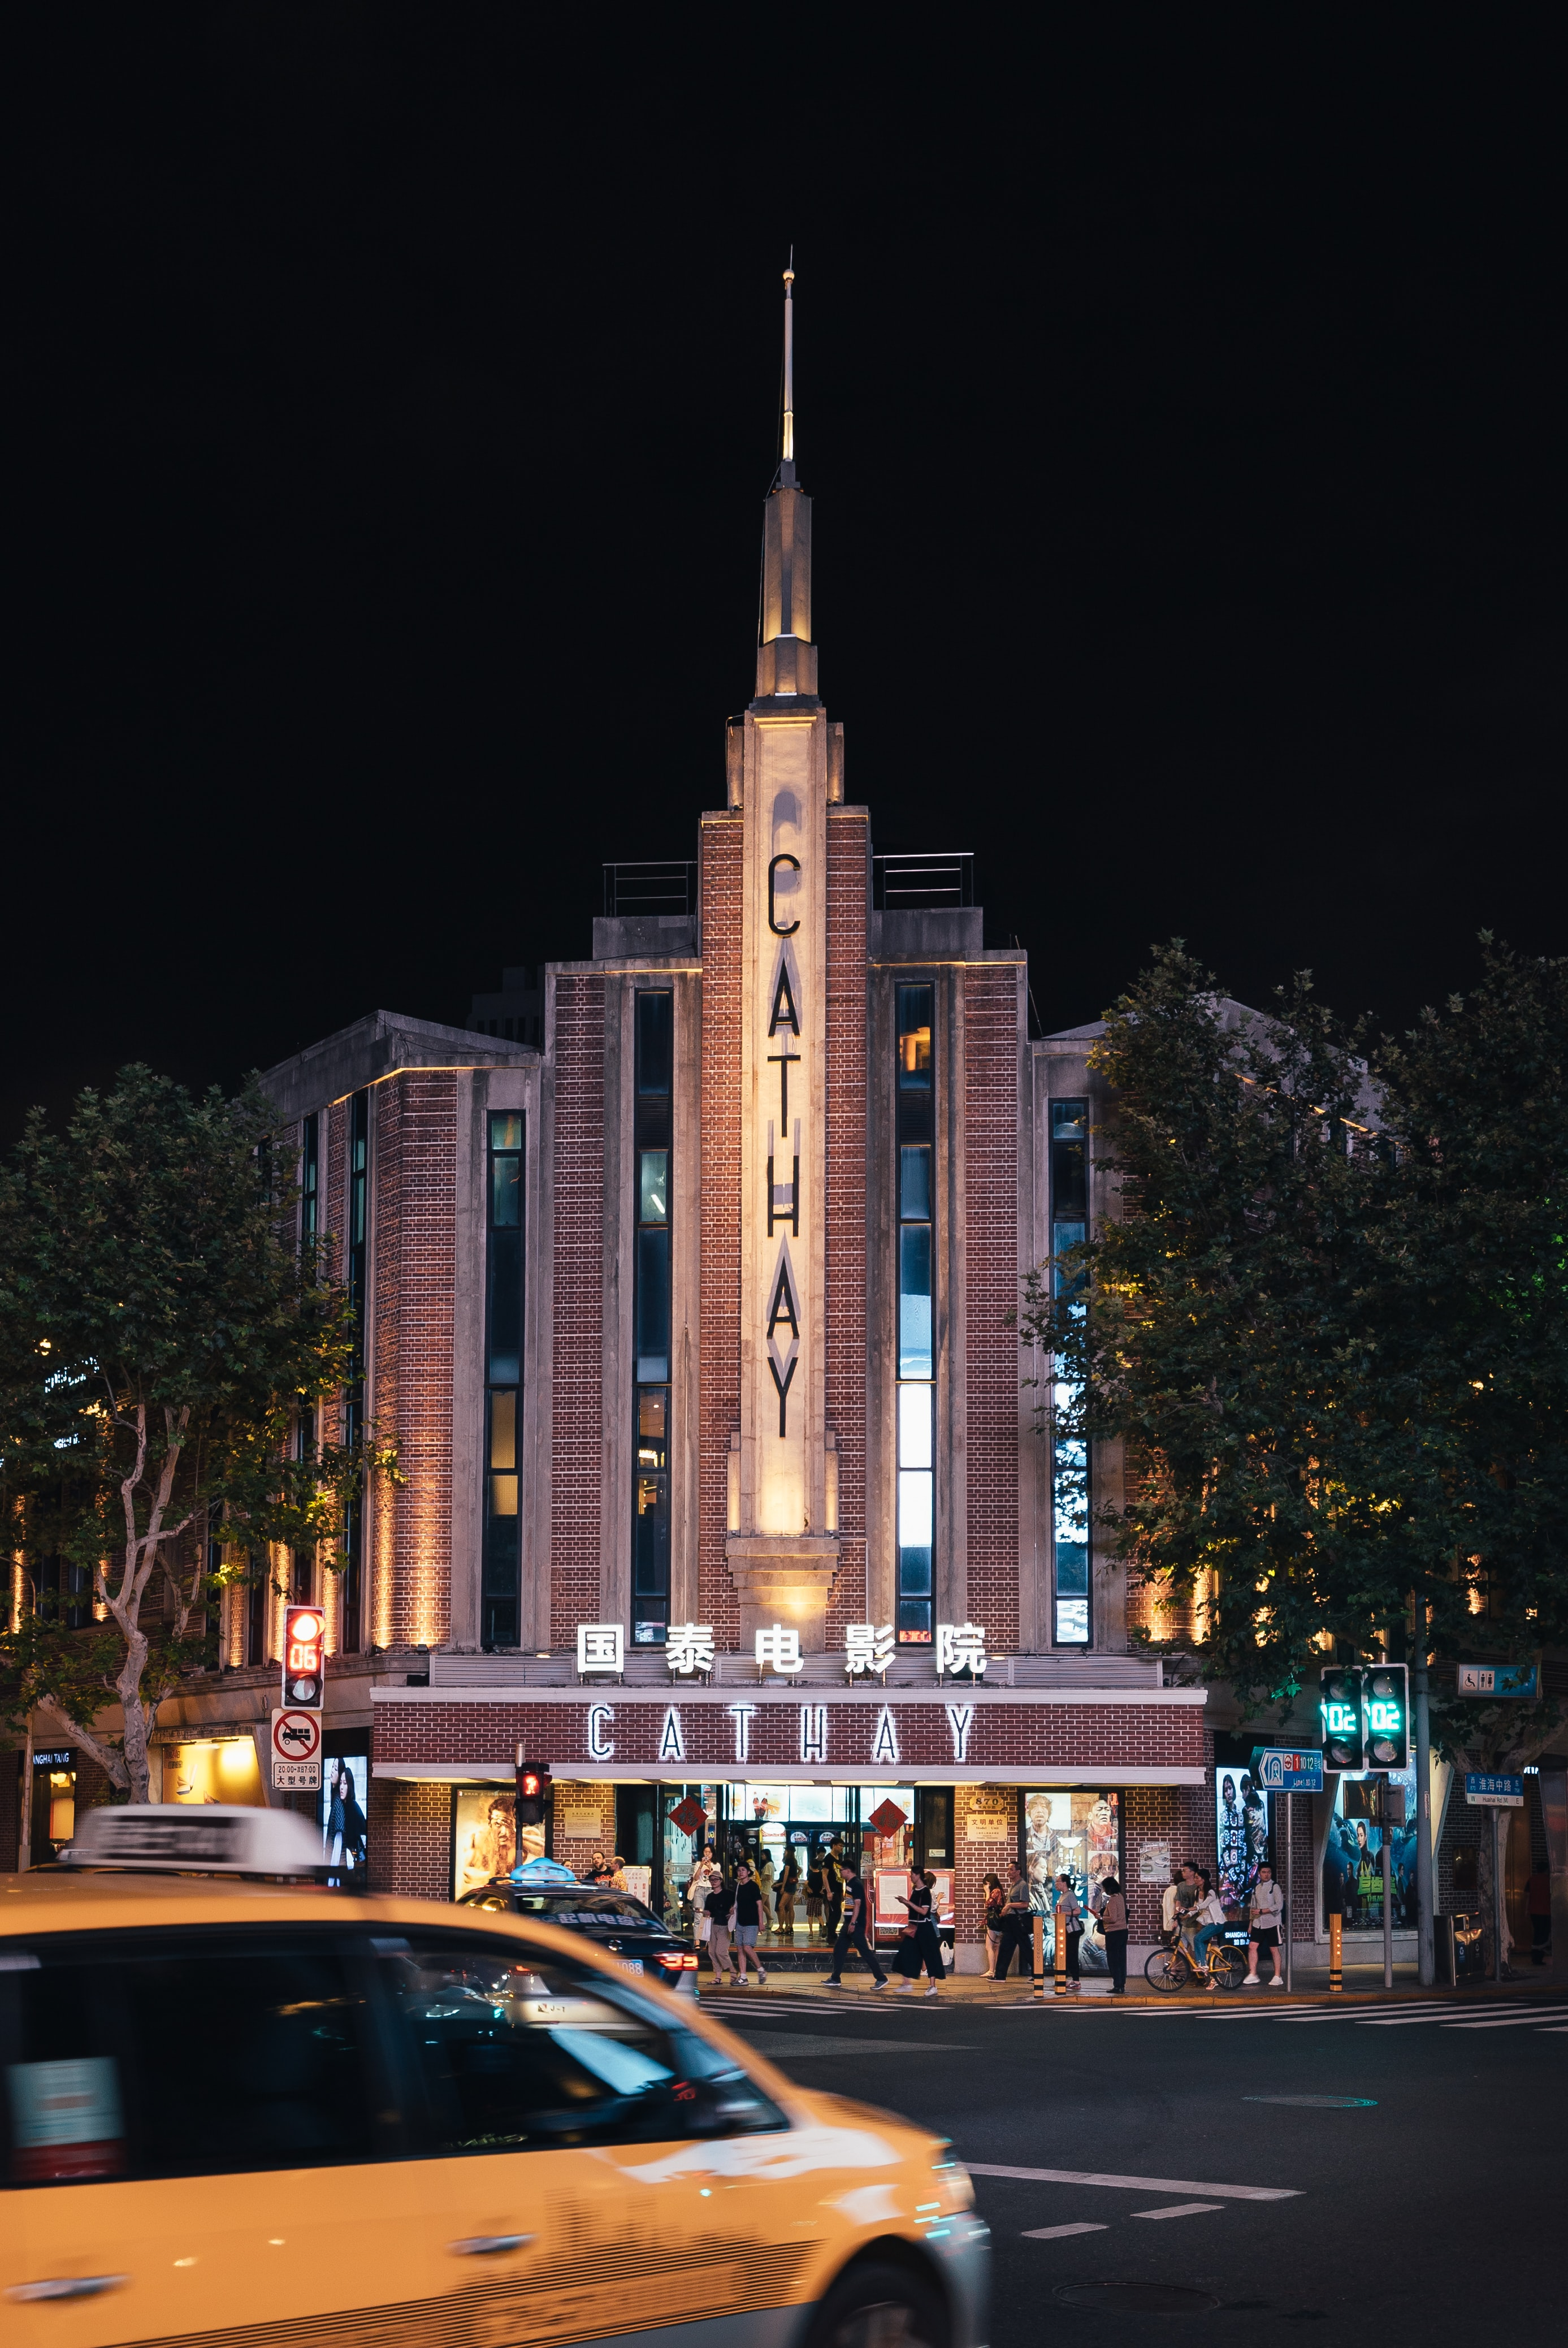 brown Cathay theater